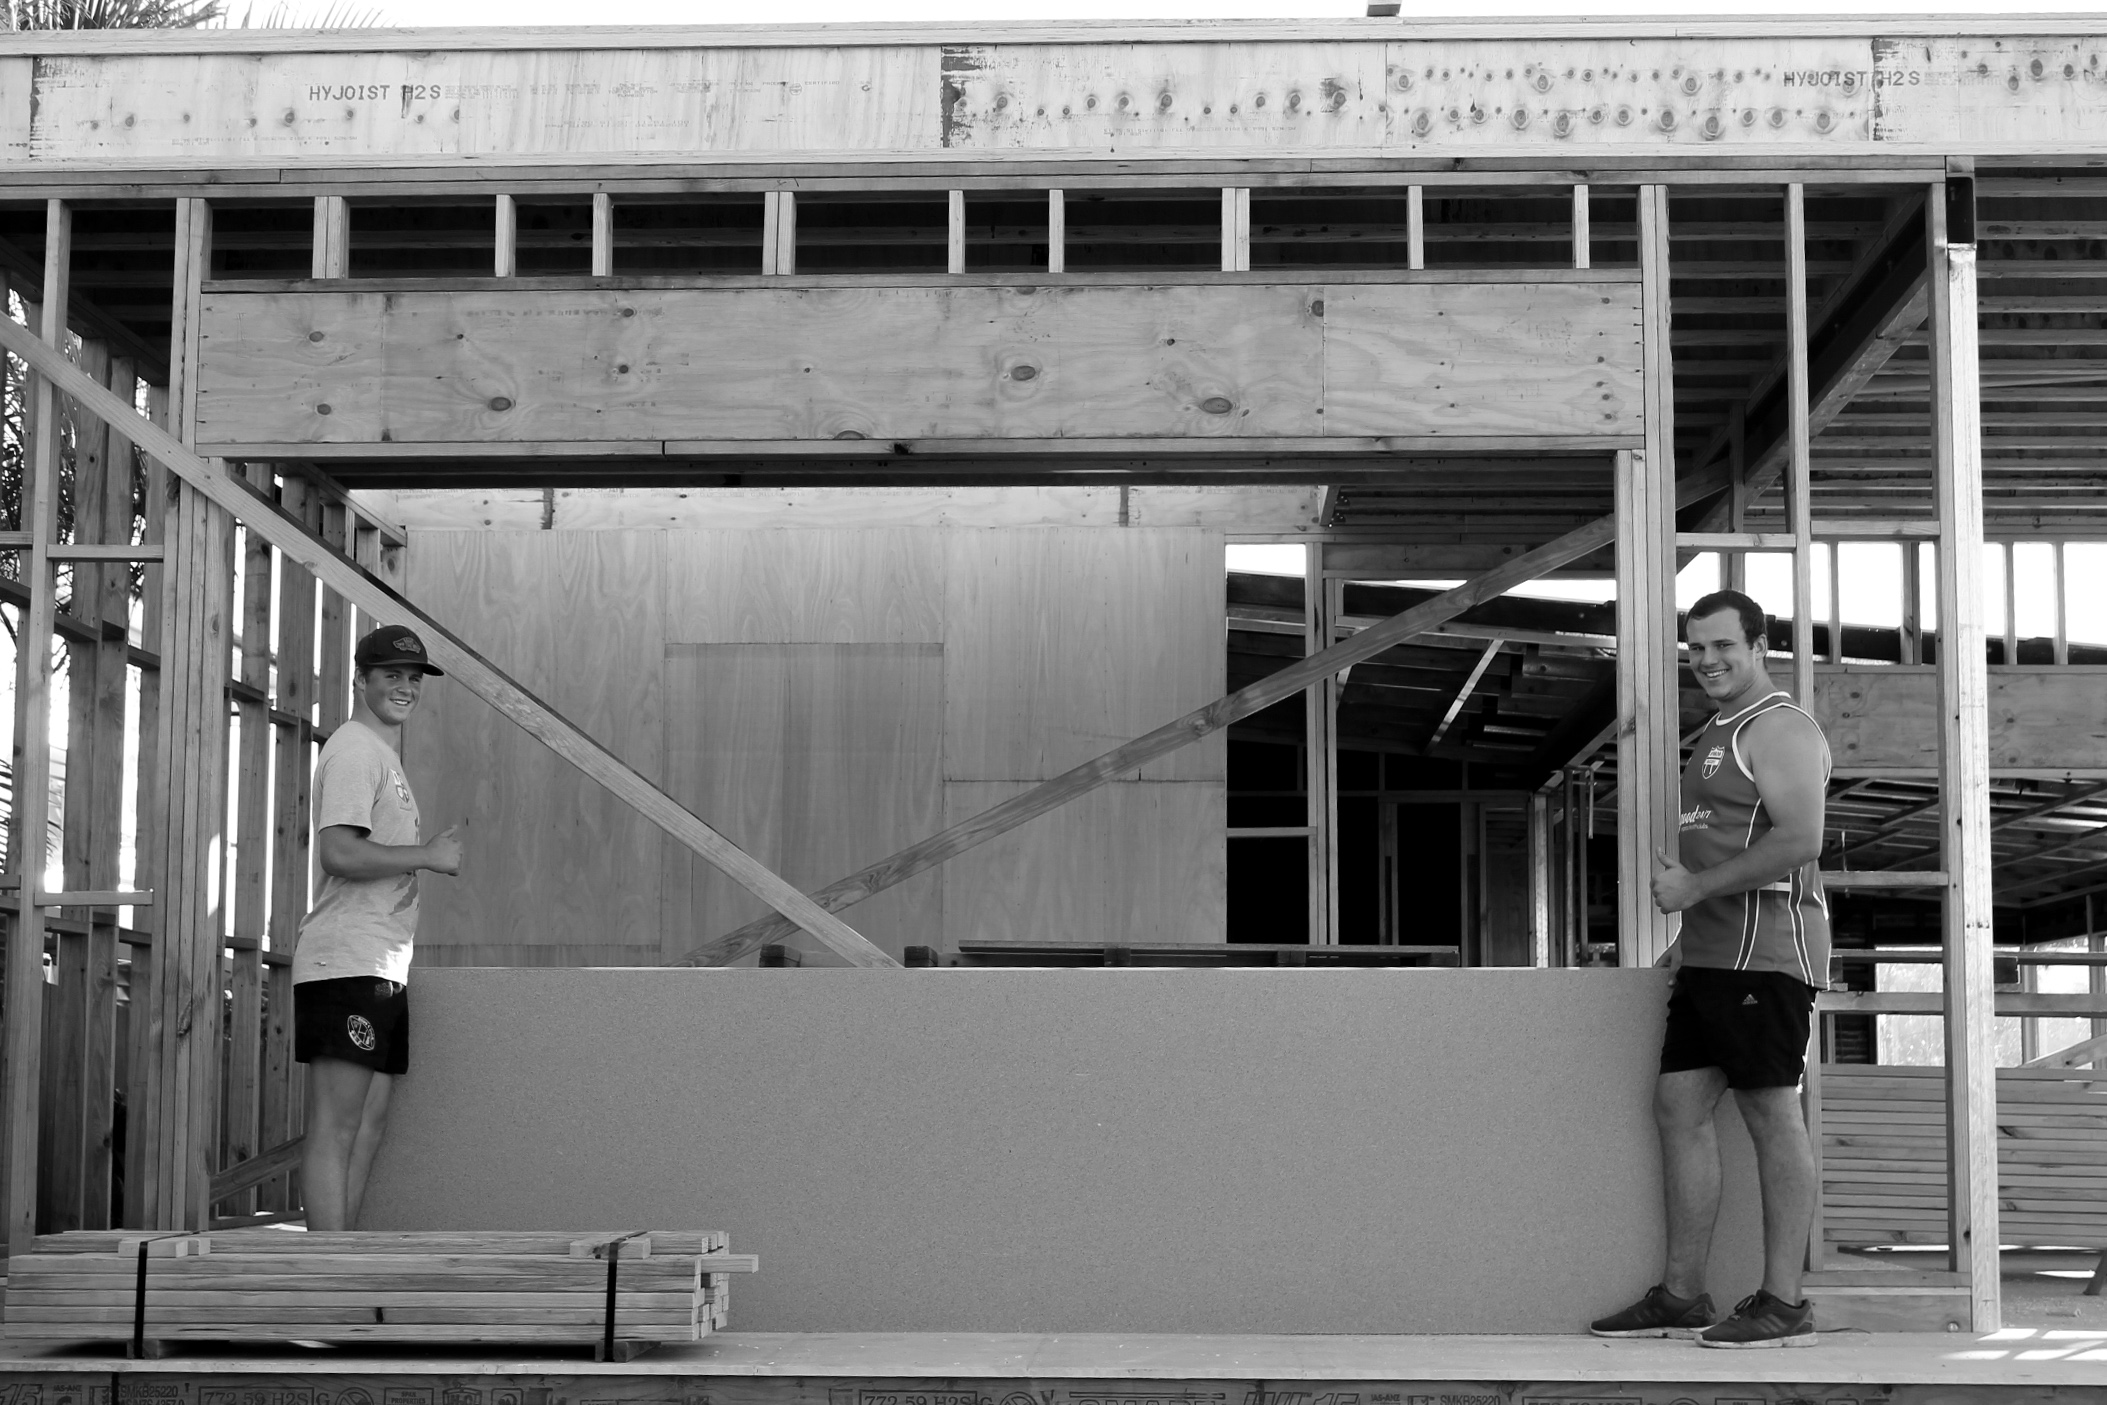 About Us - Established in 2012, Samadhi Builds is a construction and carpentry company servicing Brisbane and surrounds.Company Director Sam Carrollholds QBCC licences (#1307118) as both Builder-Low Rise and Carpentry ContractorSam manages his role as client liaison and construction manager whilst often working on the tools with the team. This ensures that from project beginning to end – quality of work and an open line of communication is maintained.Samadhi Builds aim to:Provide honest, competitive and concise pricing.Maintain an open line of communication with clients.Deliver excellent workmanship, products and finishes.Use only experienced and trusted tradesmen and subcontractors.Achieve absolute client satisfaction on each project.